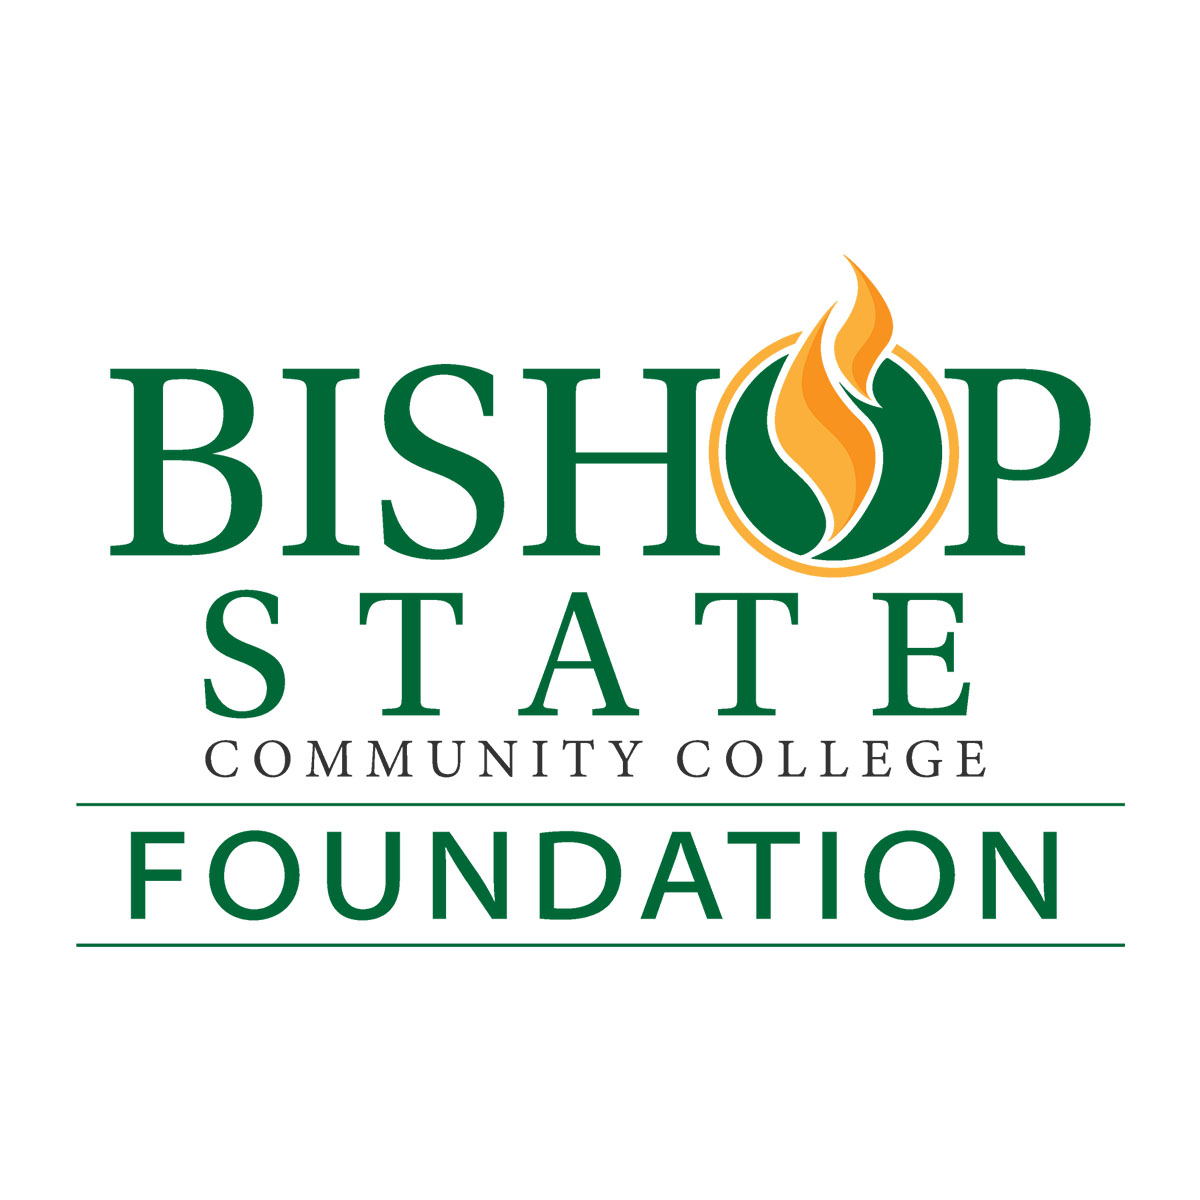 Bishop State Foundation awarded $20,000 grant to address food insecurity - Bishop State Foundation